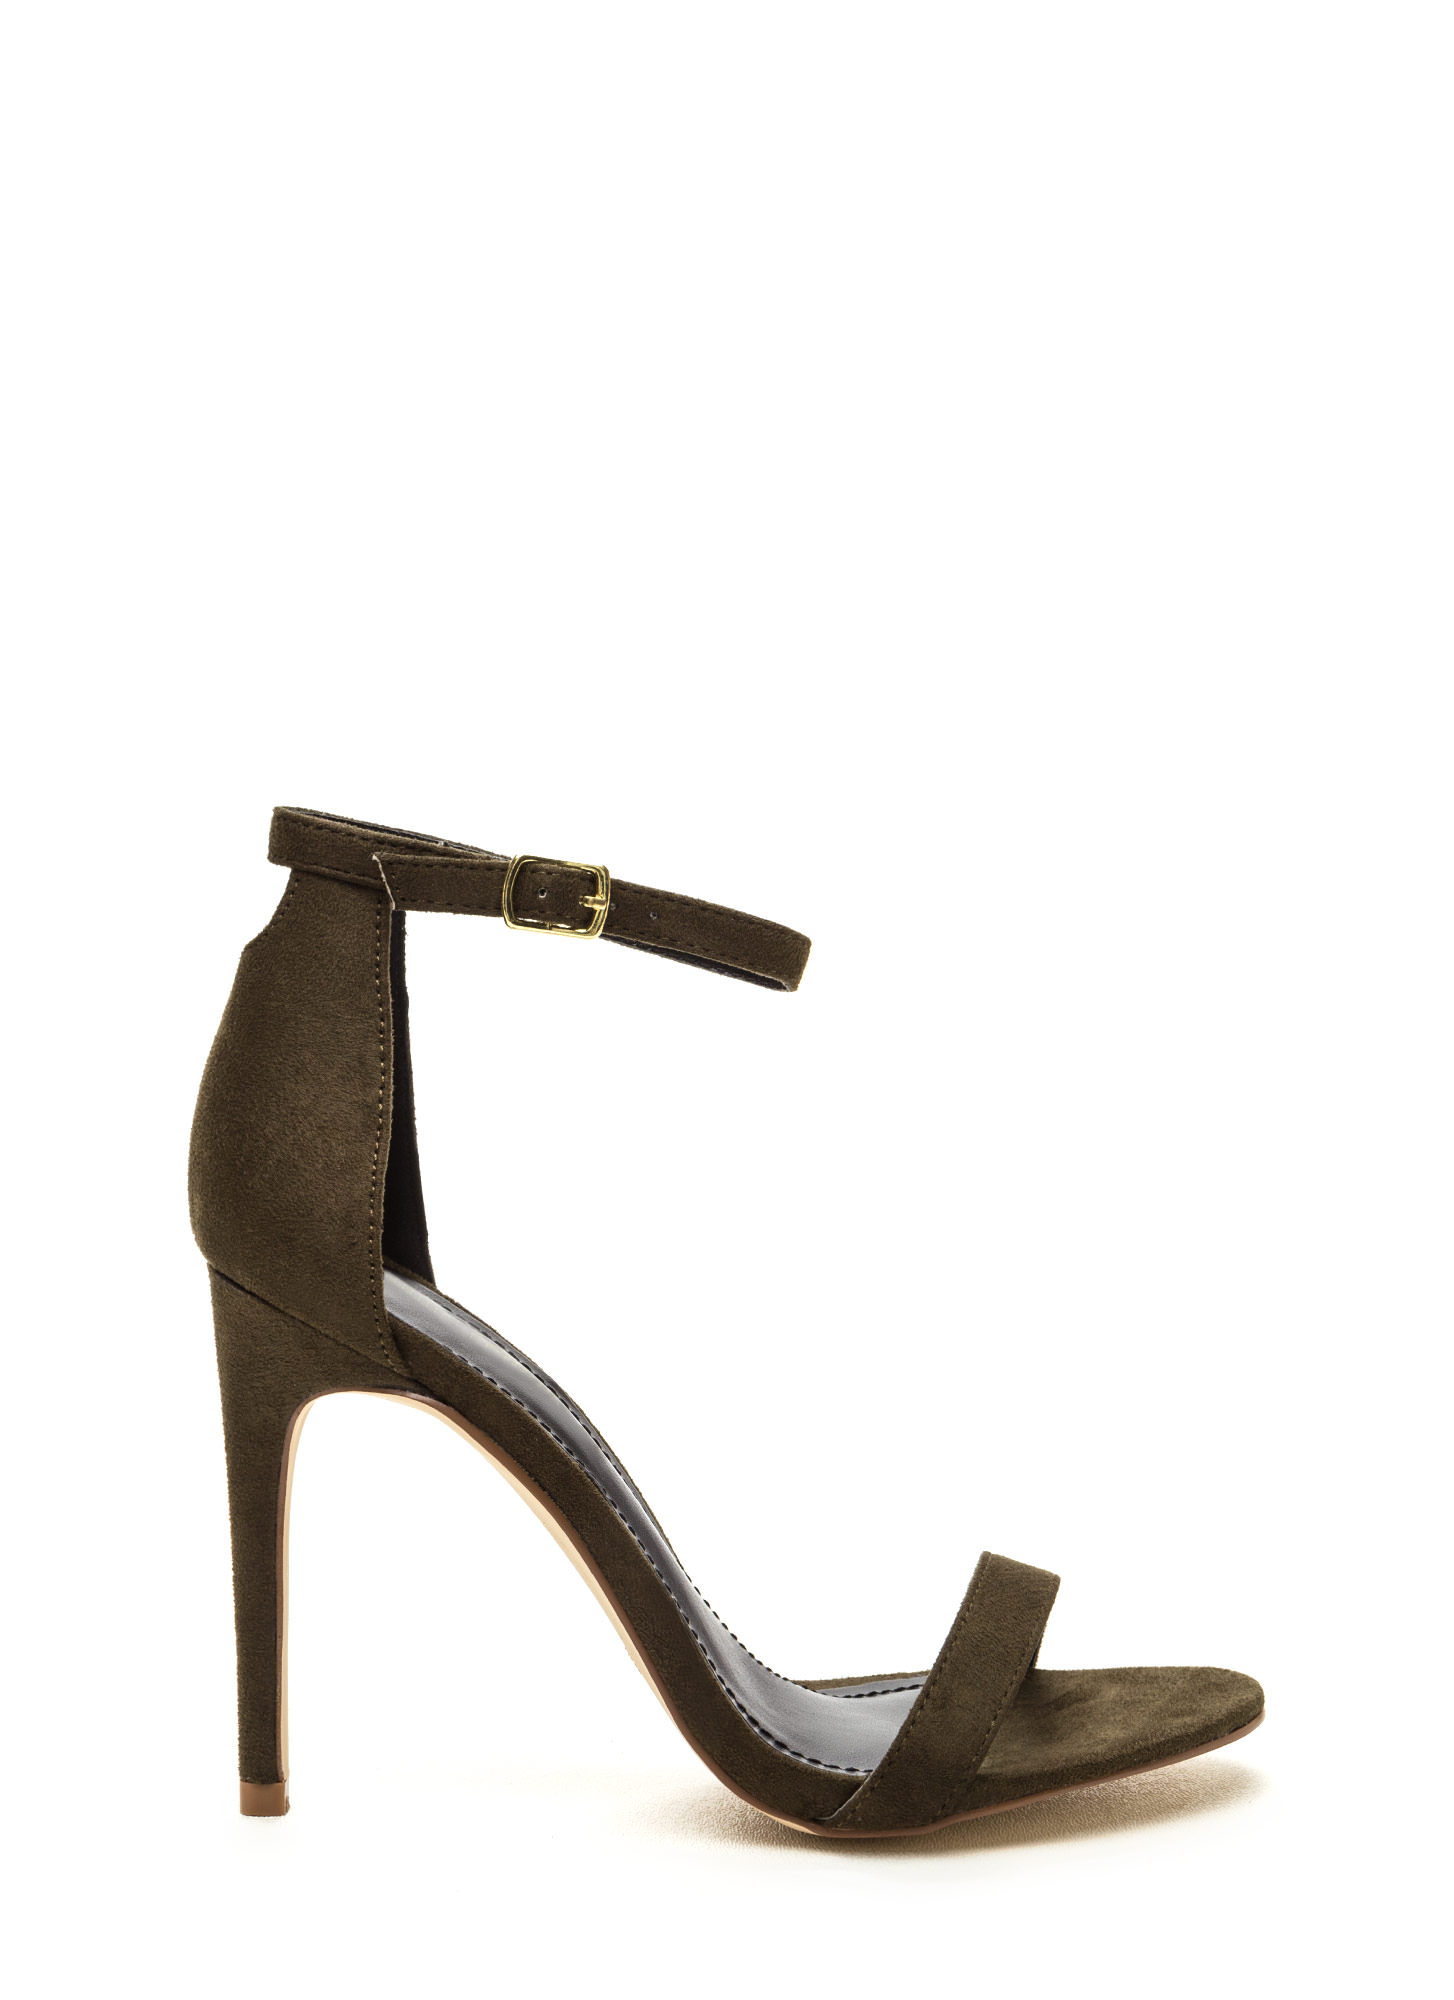 Keyhole To My Heart Faux Suede Heels OLIVE